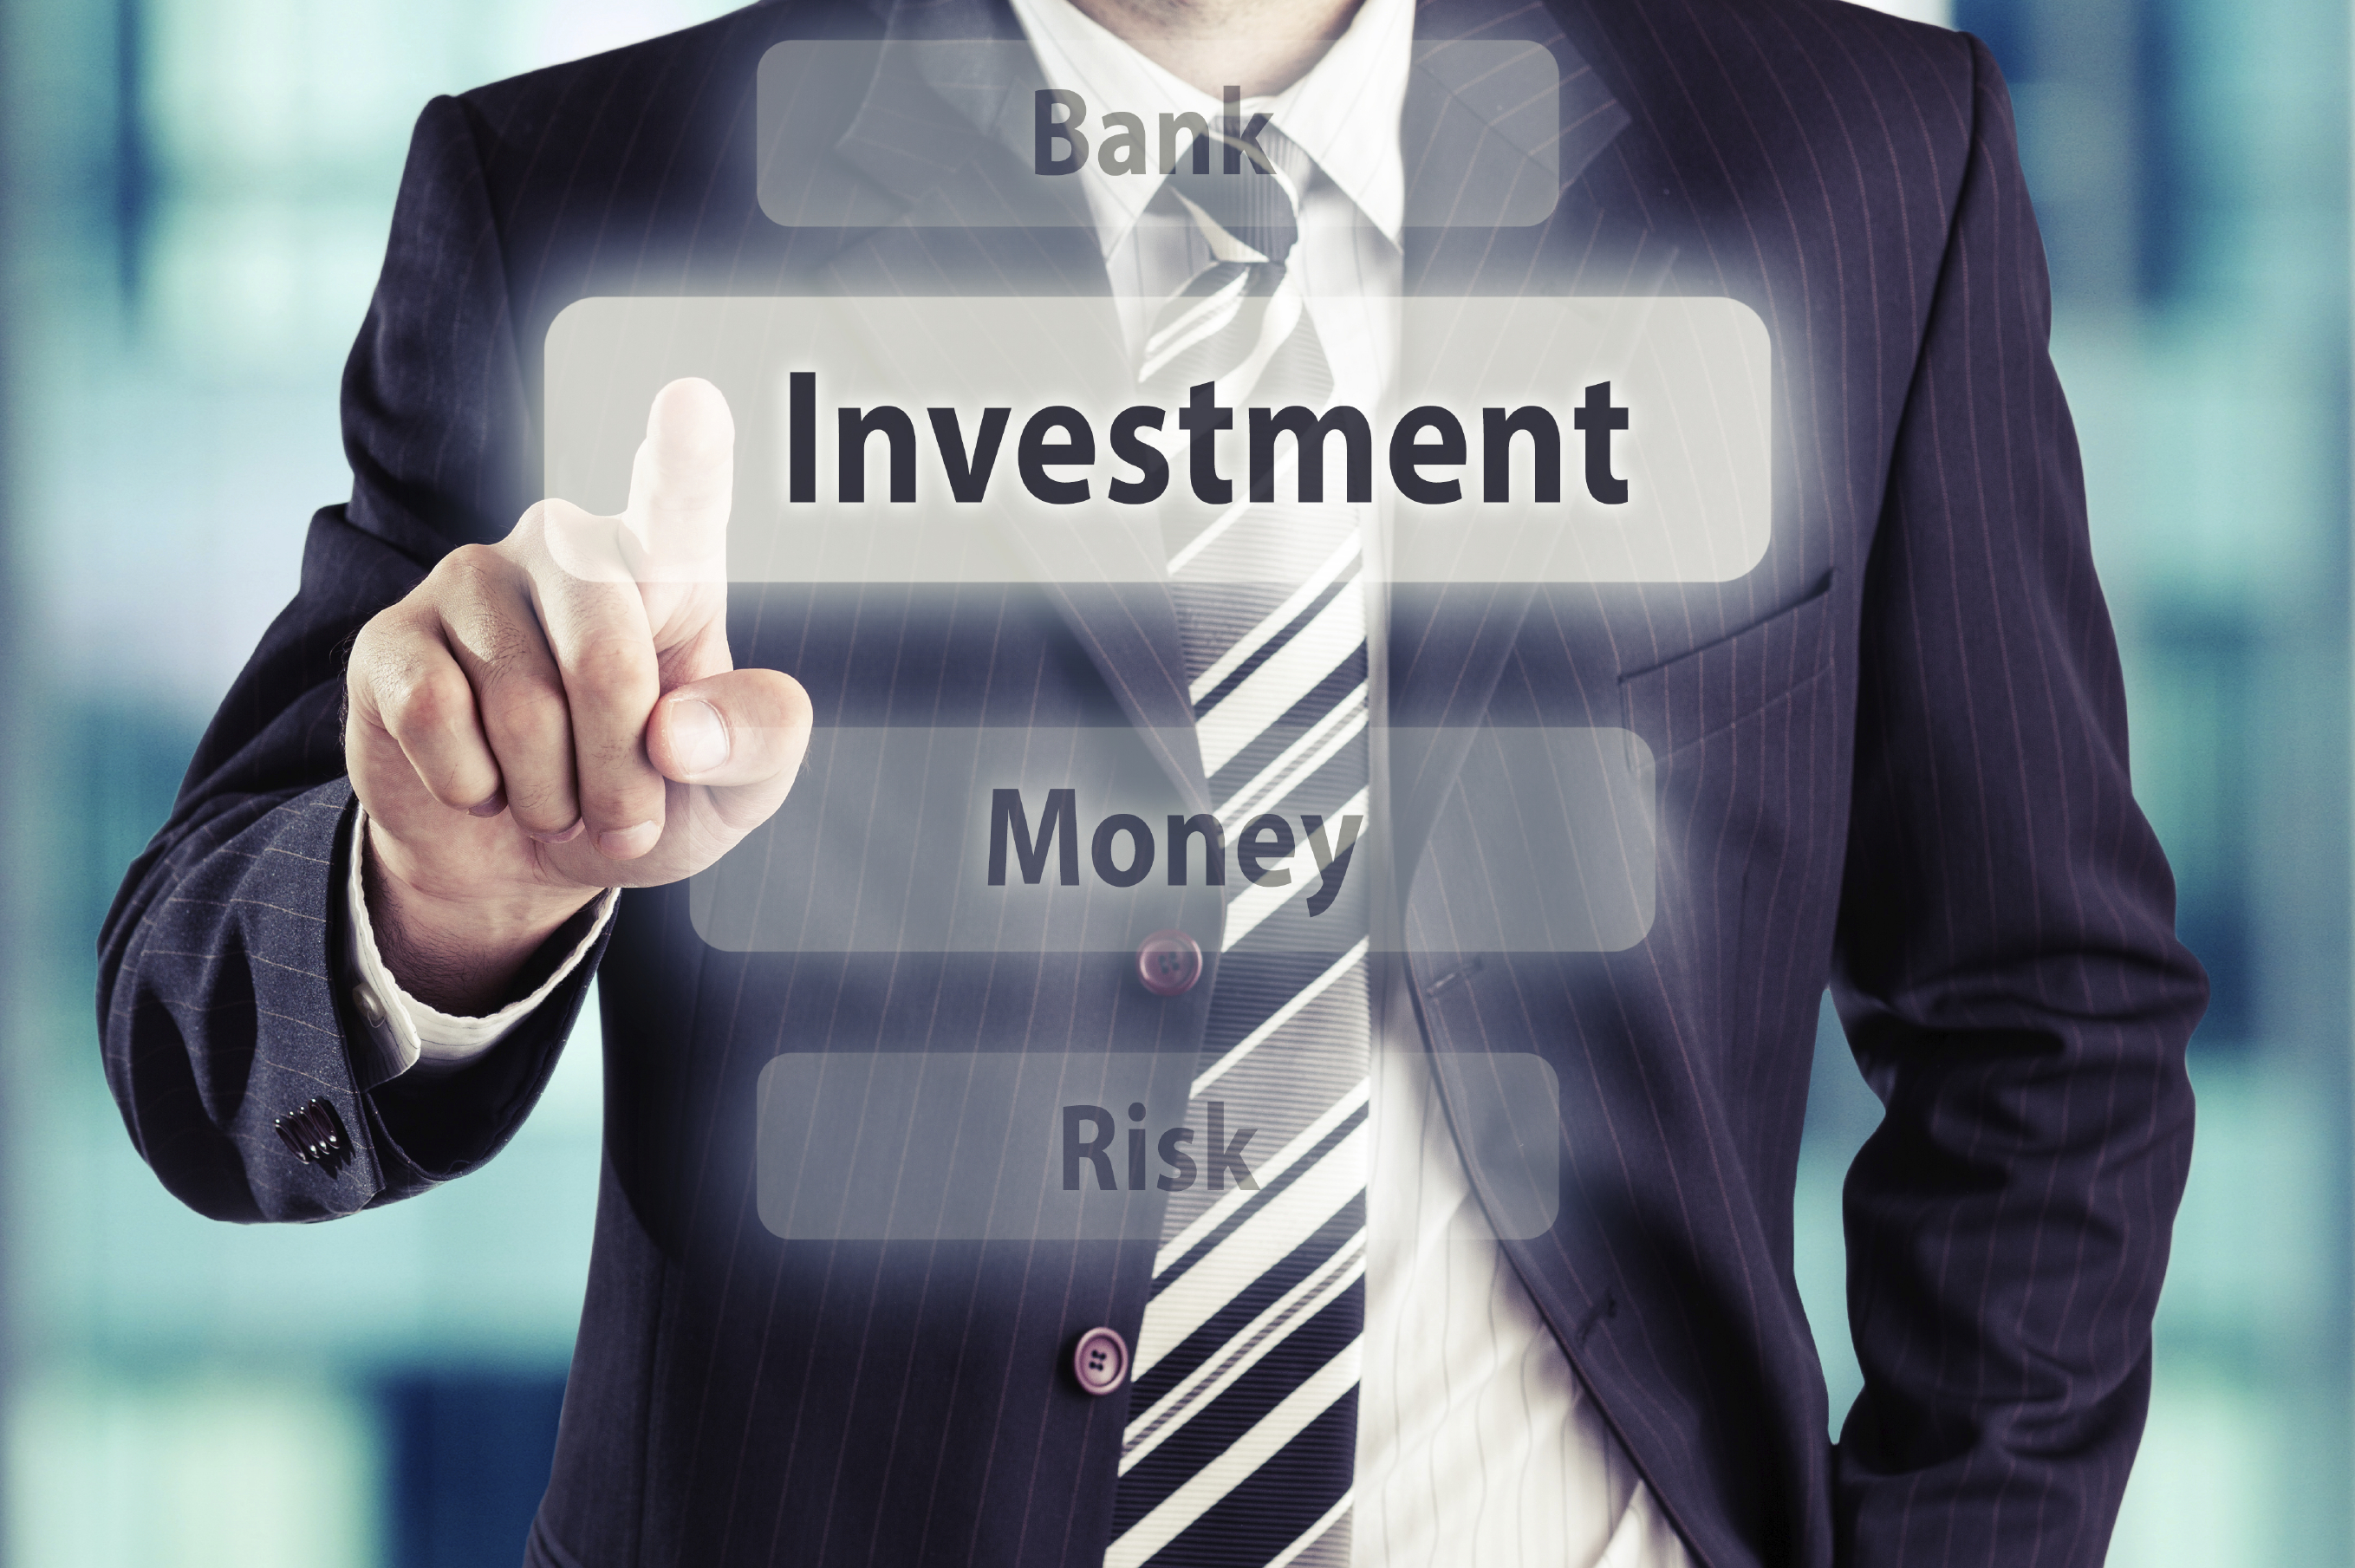 Business man pressing investment button at his office. Investment concept, toned photo.